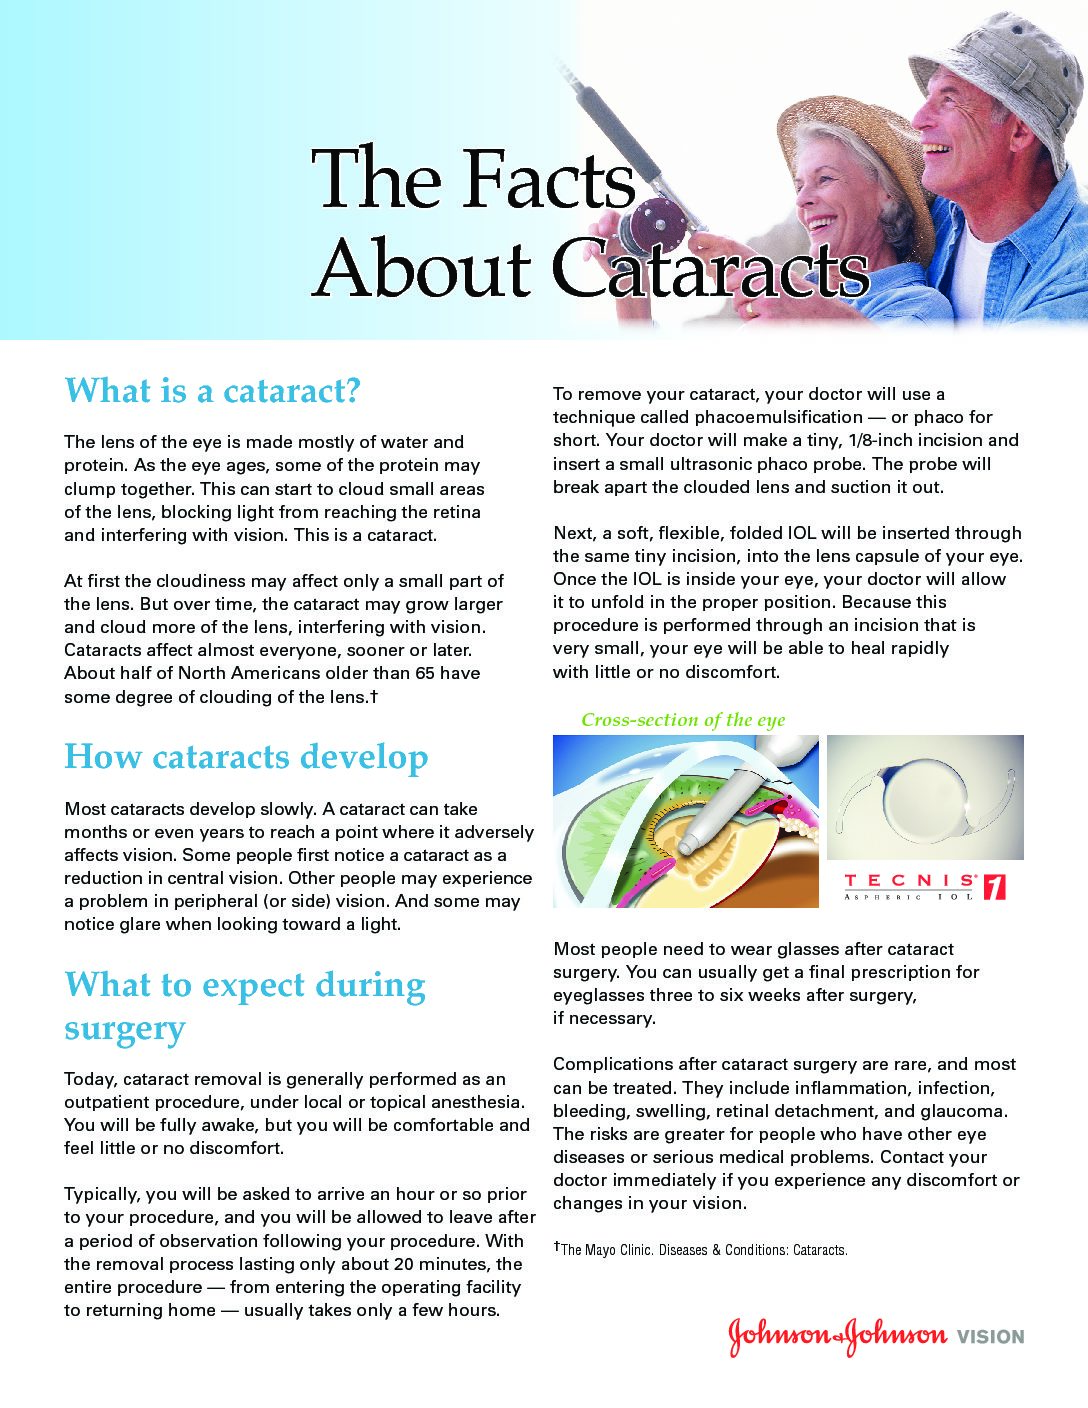 The Fact About Cataracts